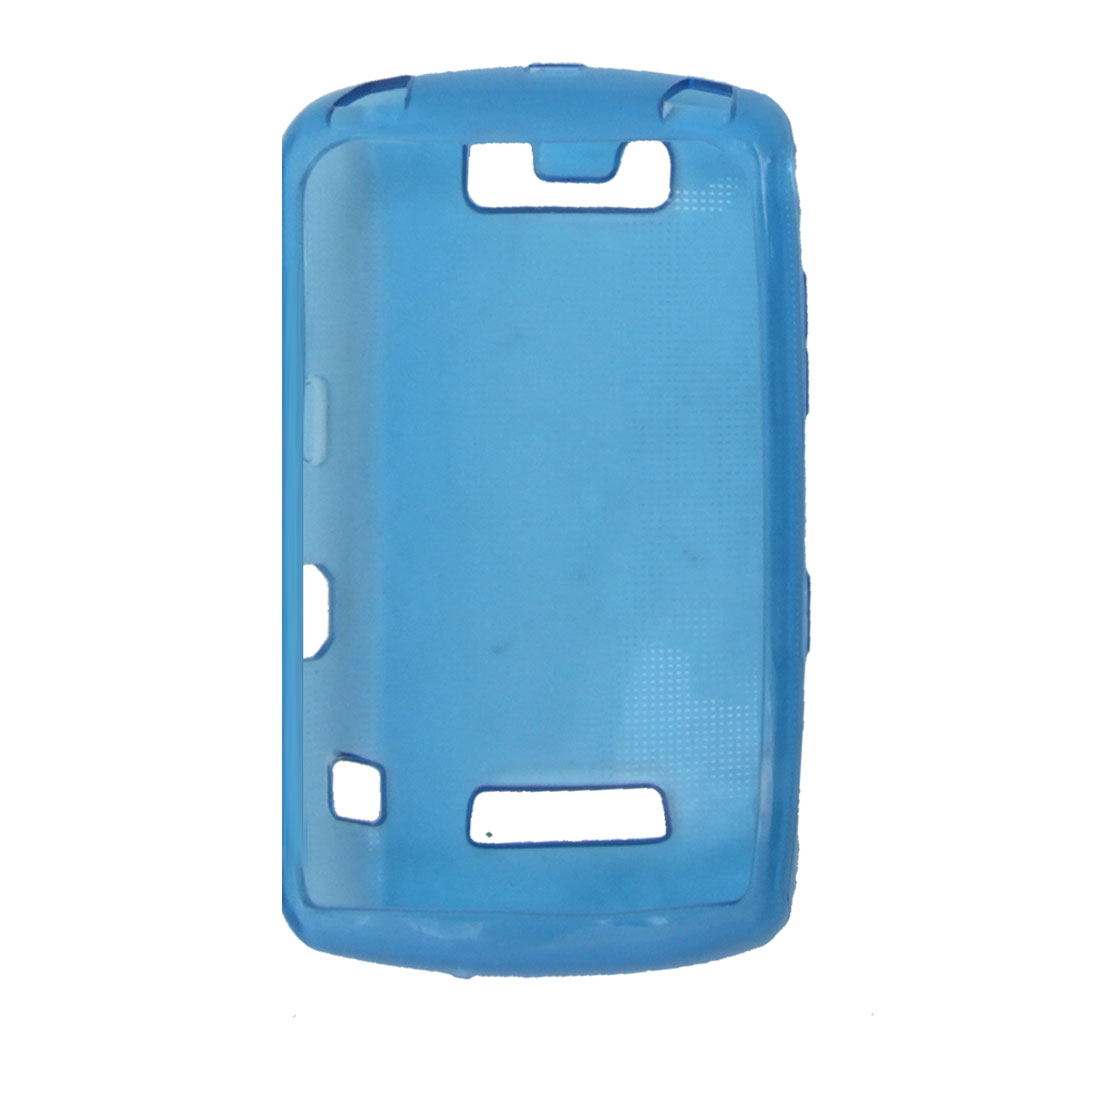 Blue Soft Plastic Case Protector for BlackBerry 9500 9530